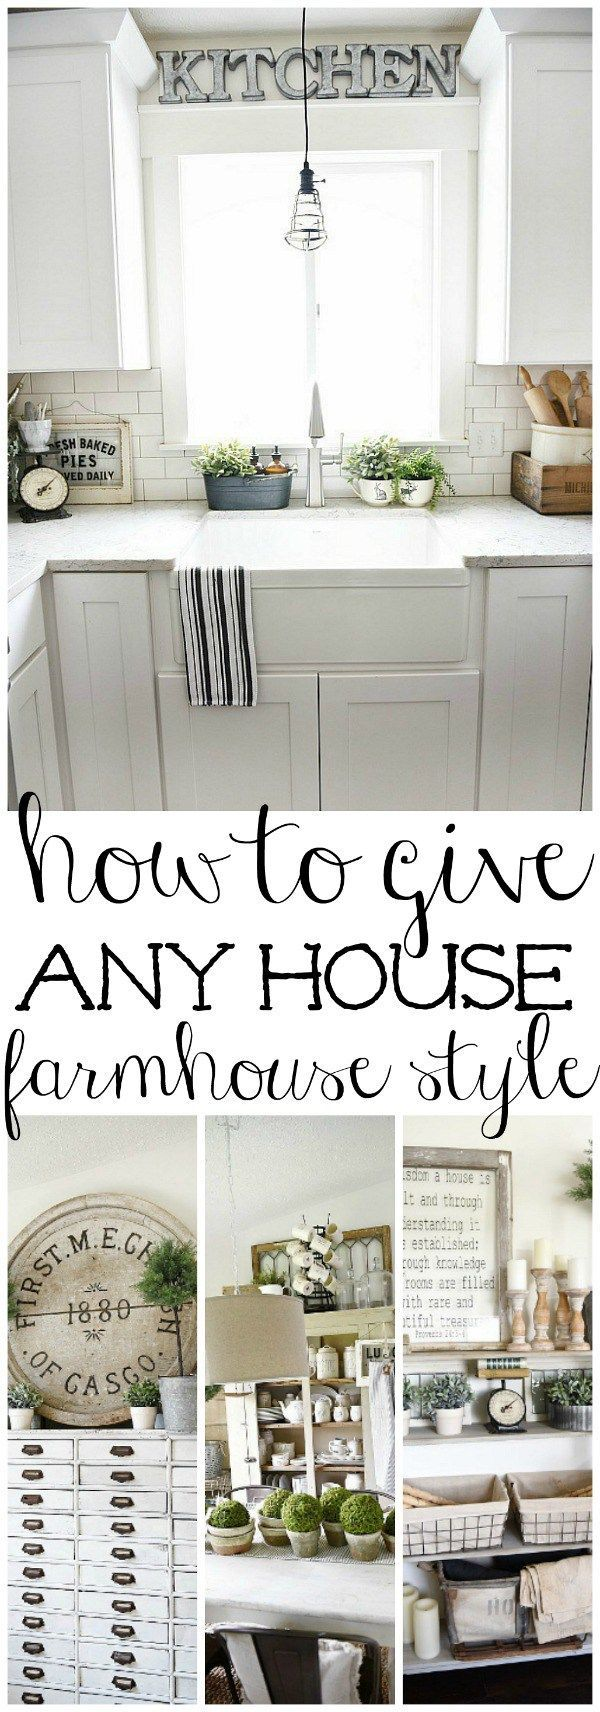 270 best Kitchen Decor images on Pinterest | Braid out, Cooking ware ...